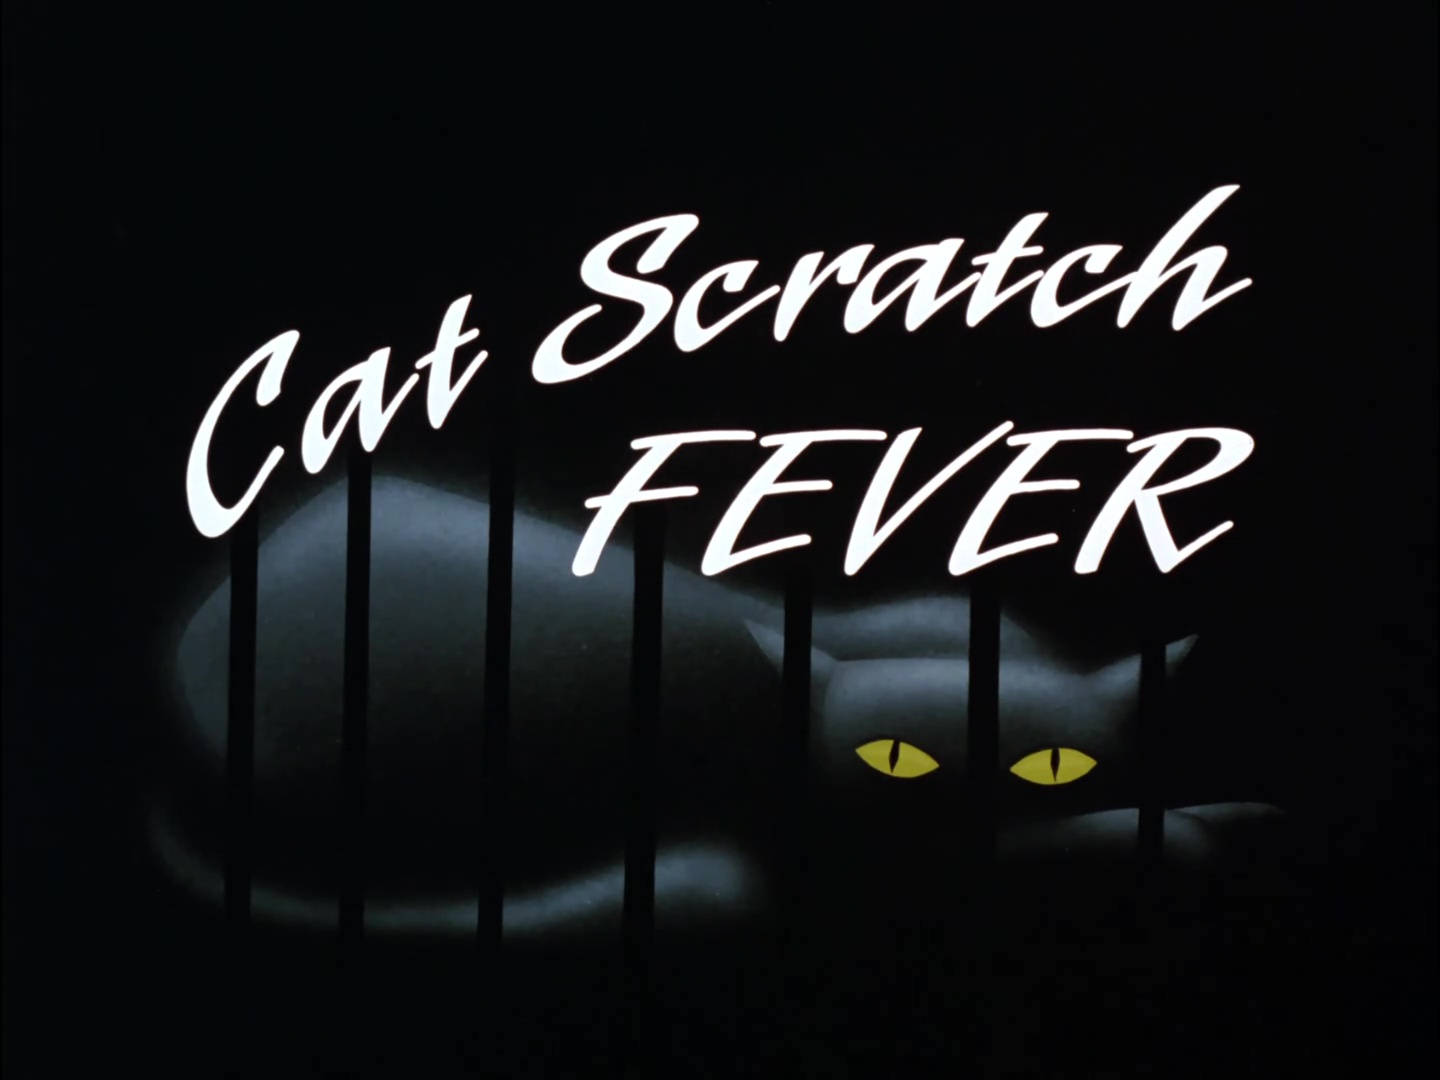 Cat Scratch Fever | Batman:The Animated Series Wiki ...